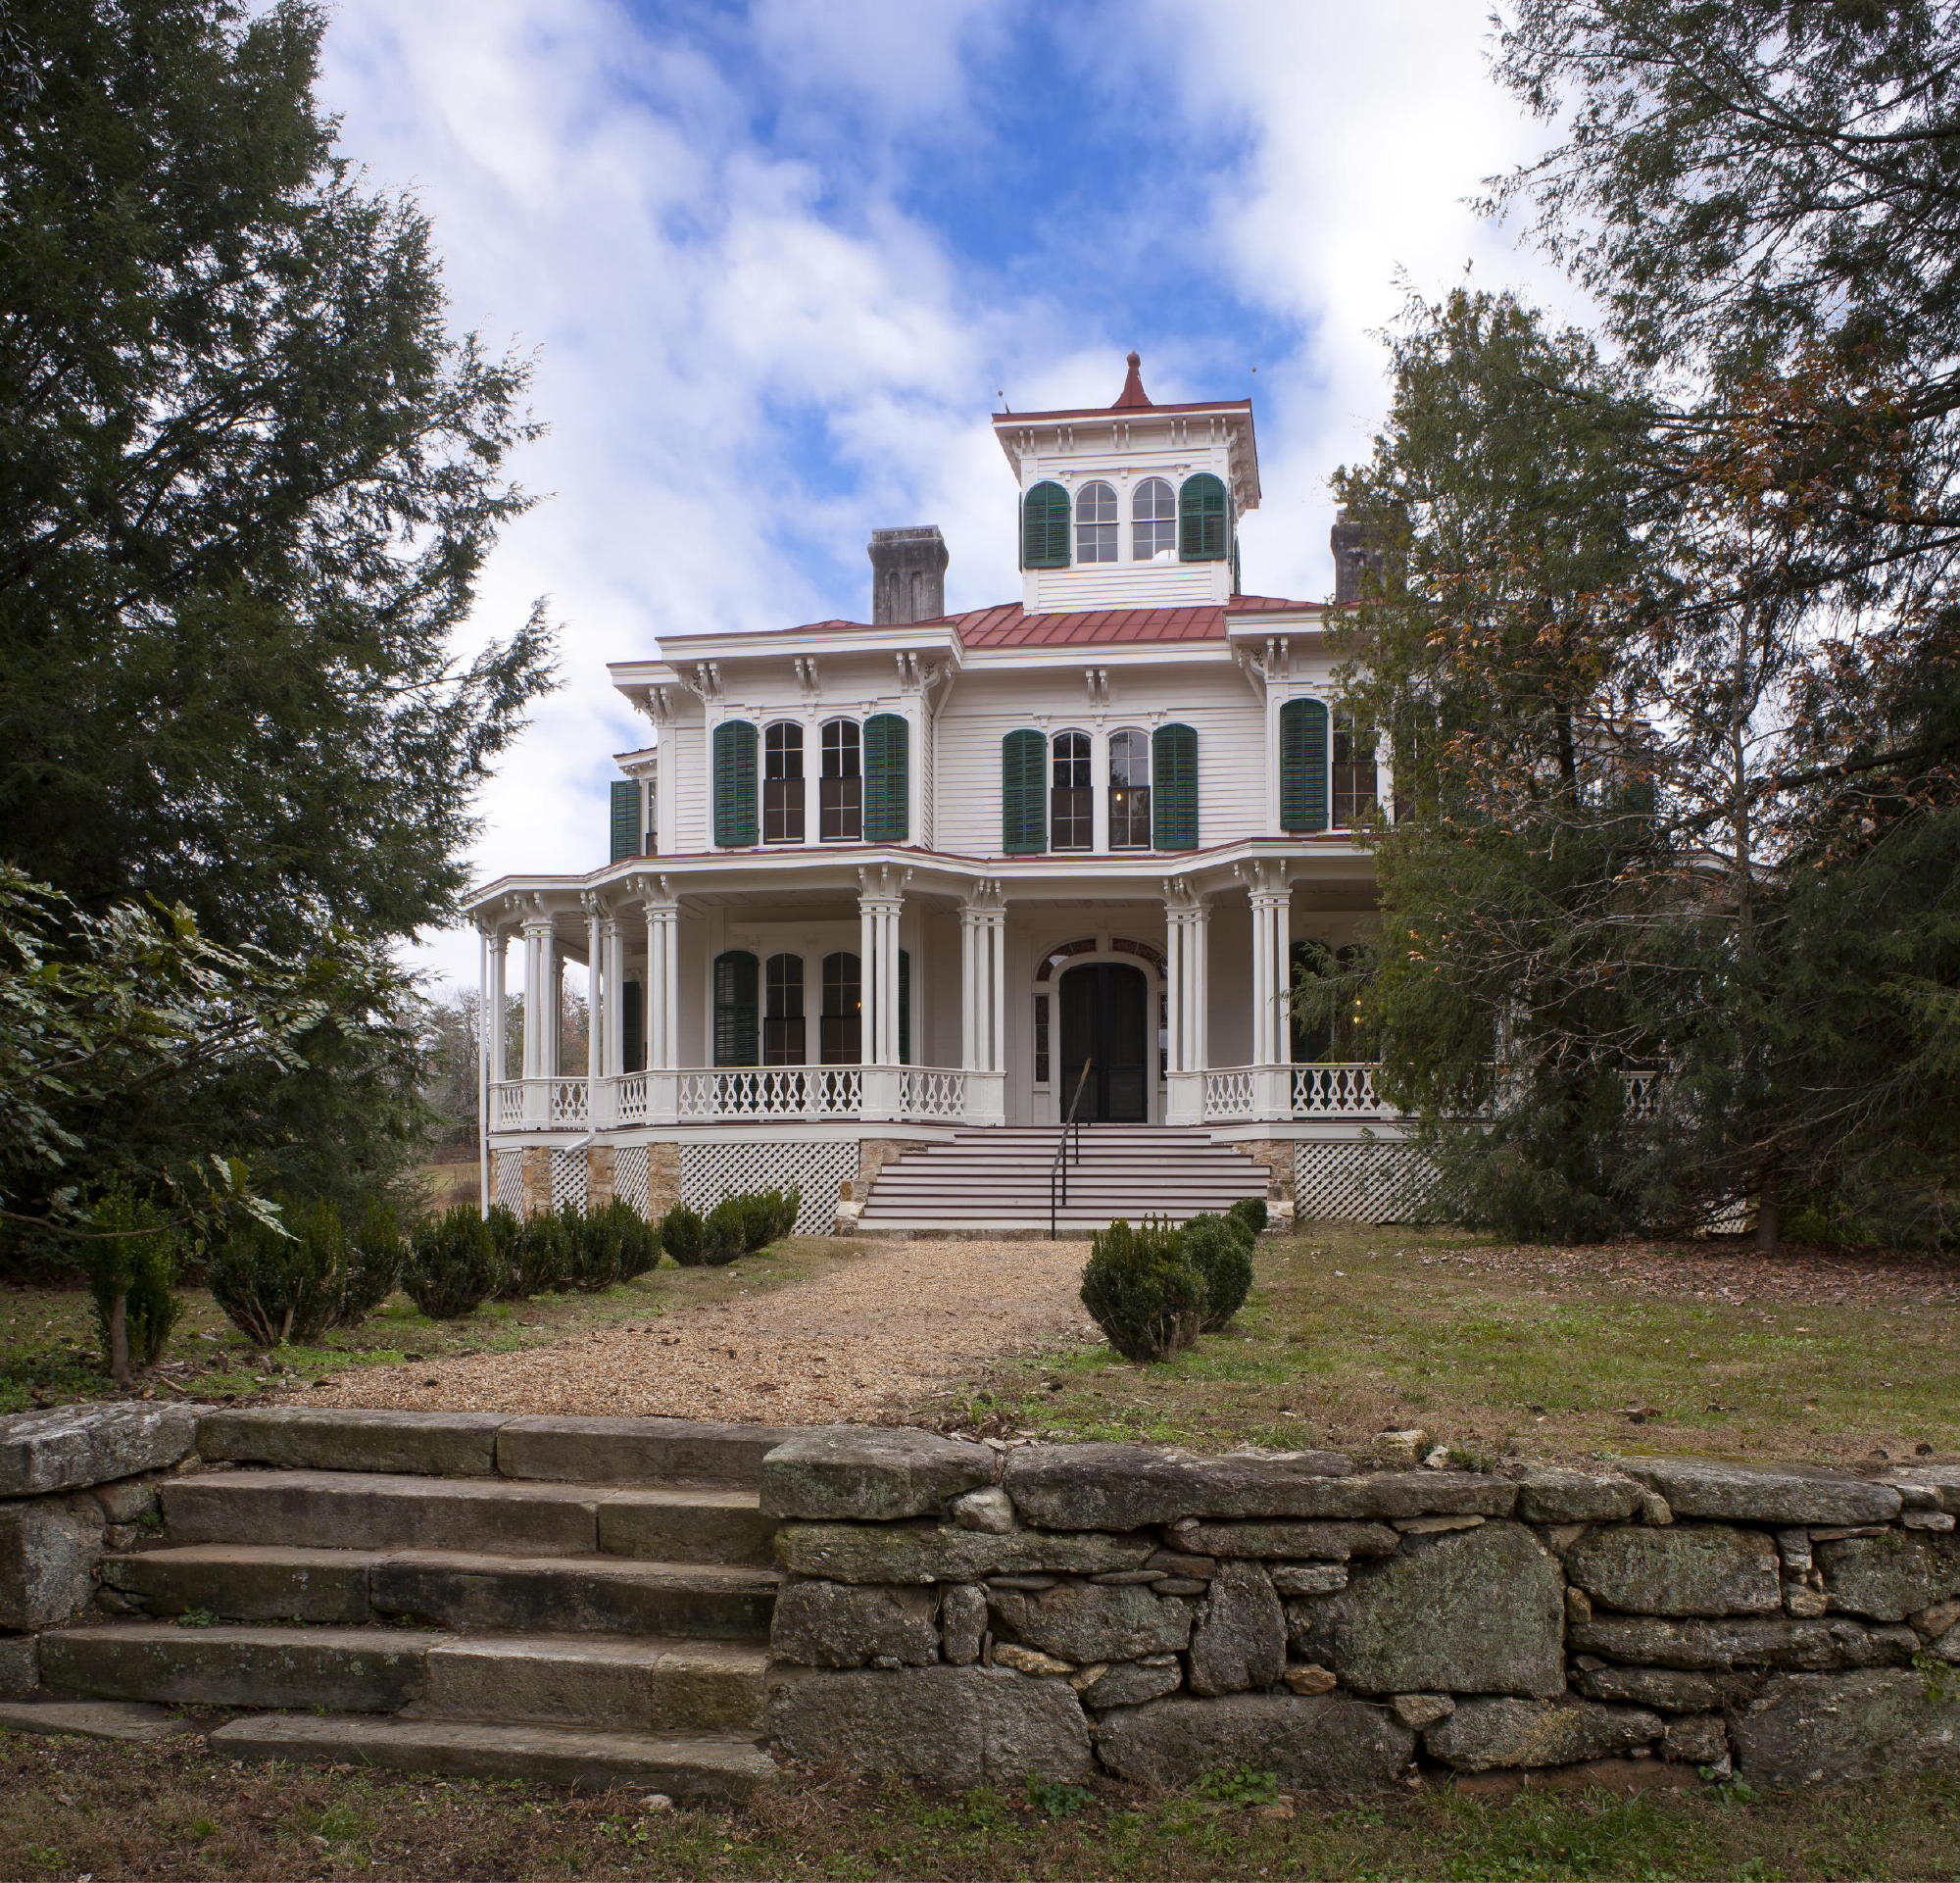 A 19th century Italianate farmhouse, once the home of a Georgia governor, has been restored to its most significant period of occupation, approximately 1915-1925, and awarded LEED Gold certification. Photo: c Jonathan Hillyer / Atlanta